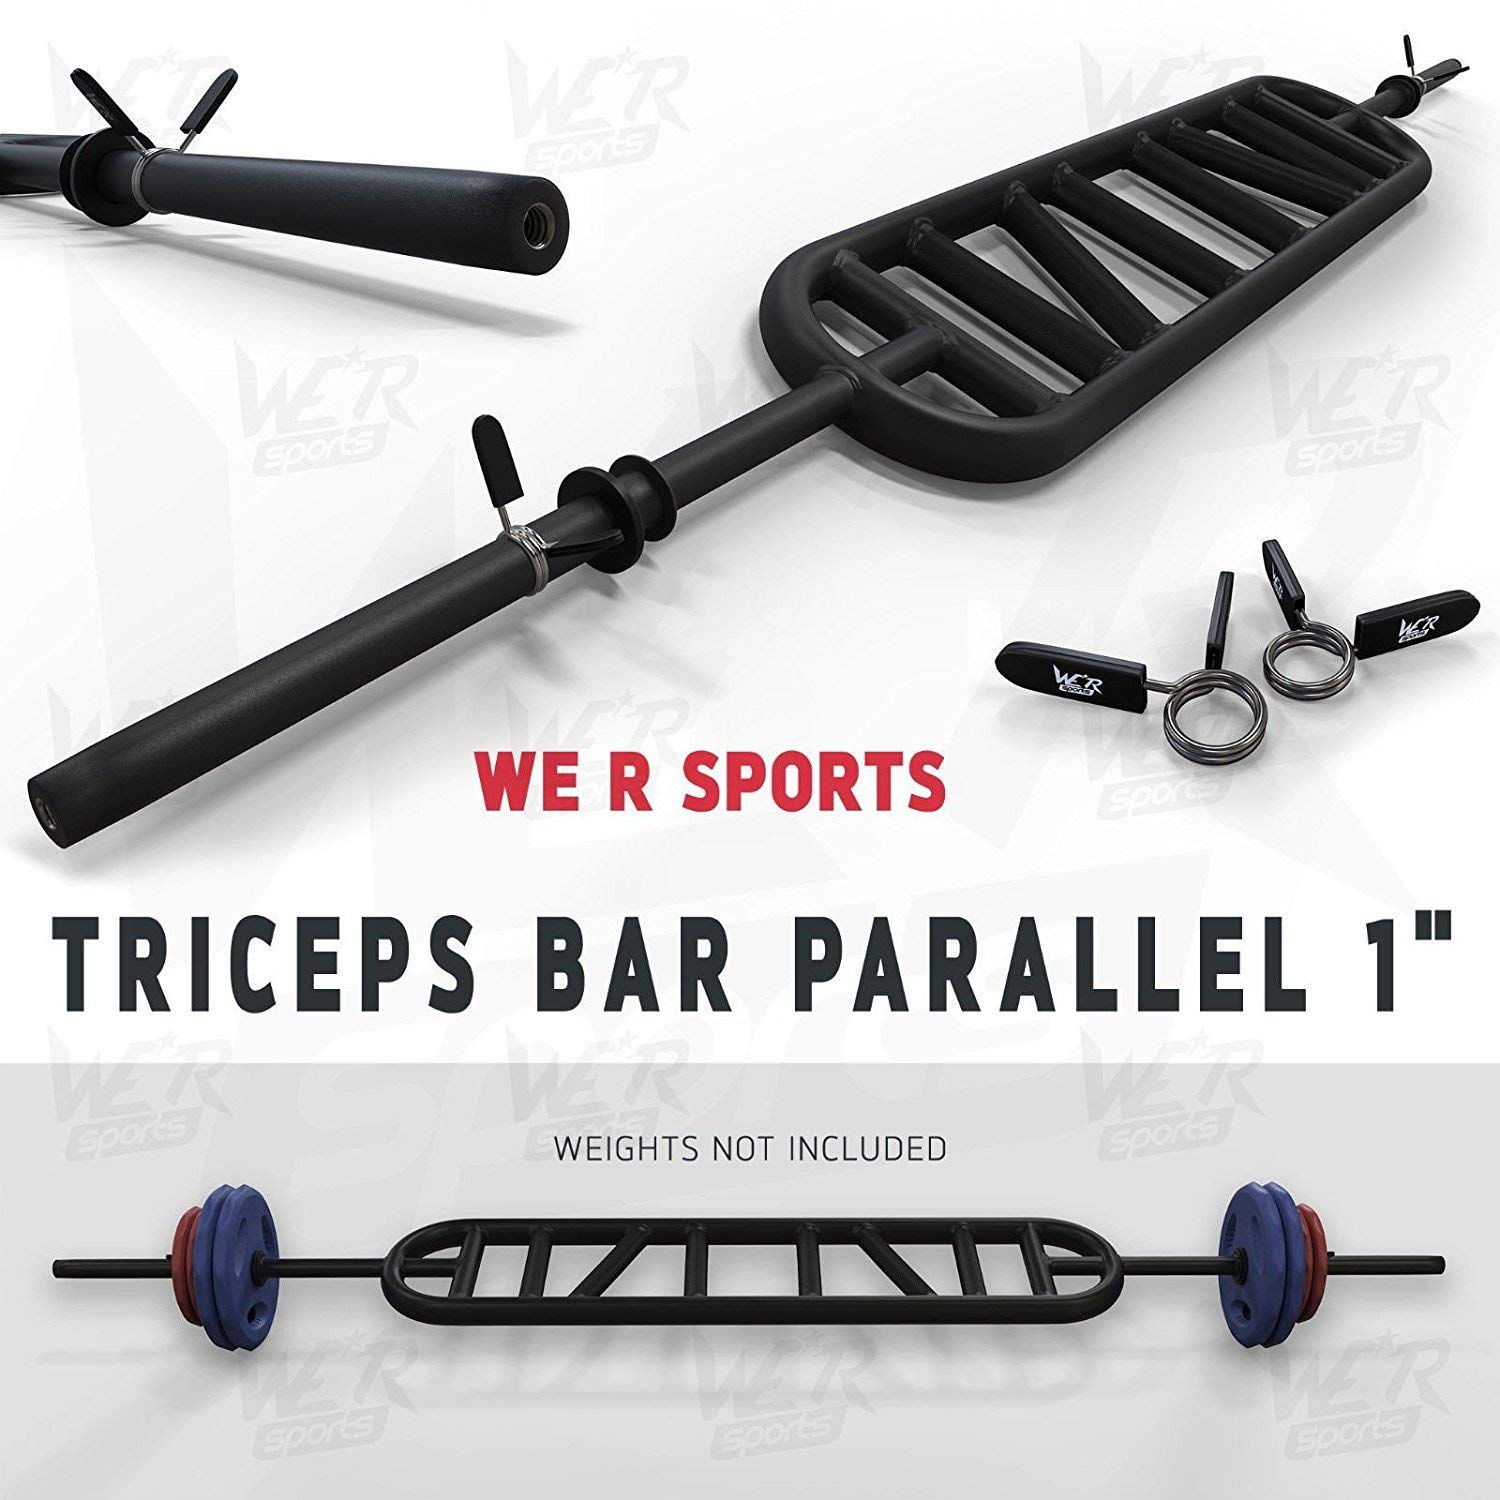 We R Sports Triceps Bar Parallel and Angled Handle Multi Grip Standard Bar 1